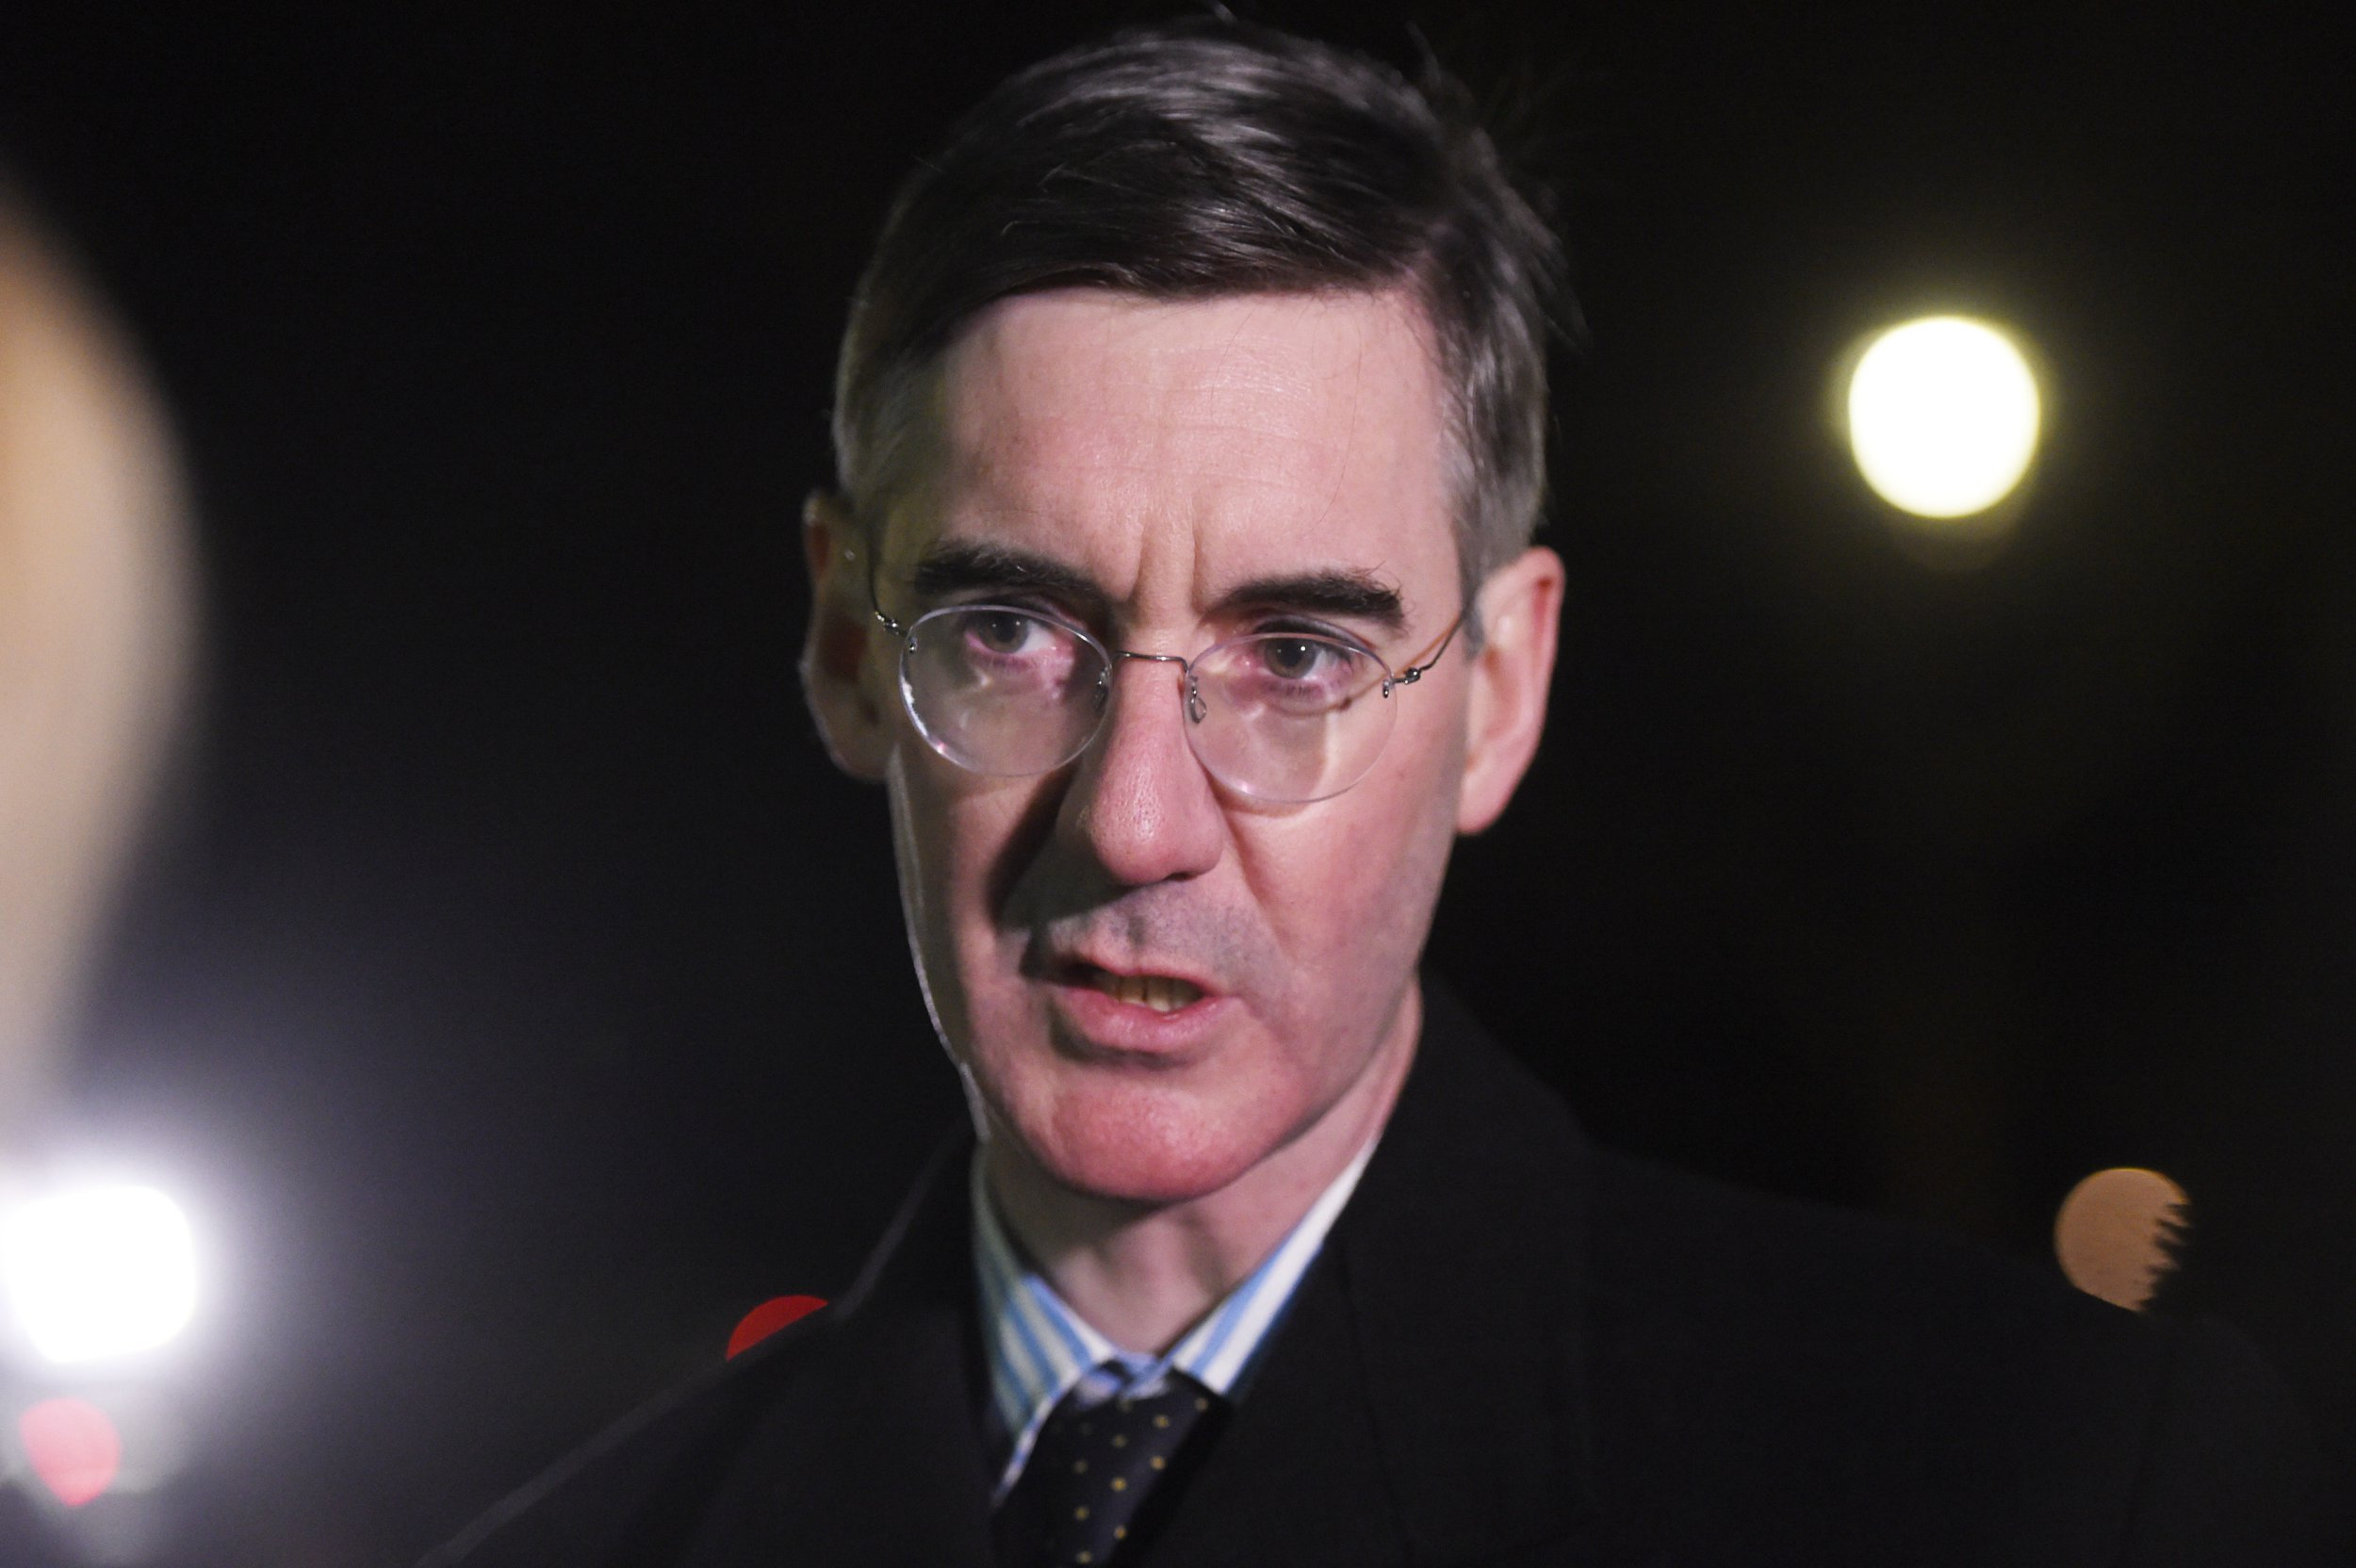 Conservative MP Jacob Rees-Mogg outside the Houses of Parliament in Westminster, London, after Prime Minister Theresa May survived an attempt by Tory MPs to oust her with a vote of no confidence. PRESS ASSOCIATION Photo. Picture date: Wednesday December 12, 2018. See PA story POLITICS Brexit. Photo credit should read: David Mirzoeff/PA Wire